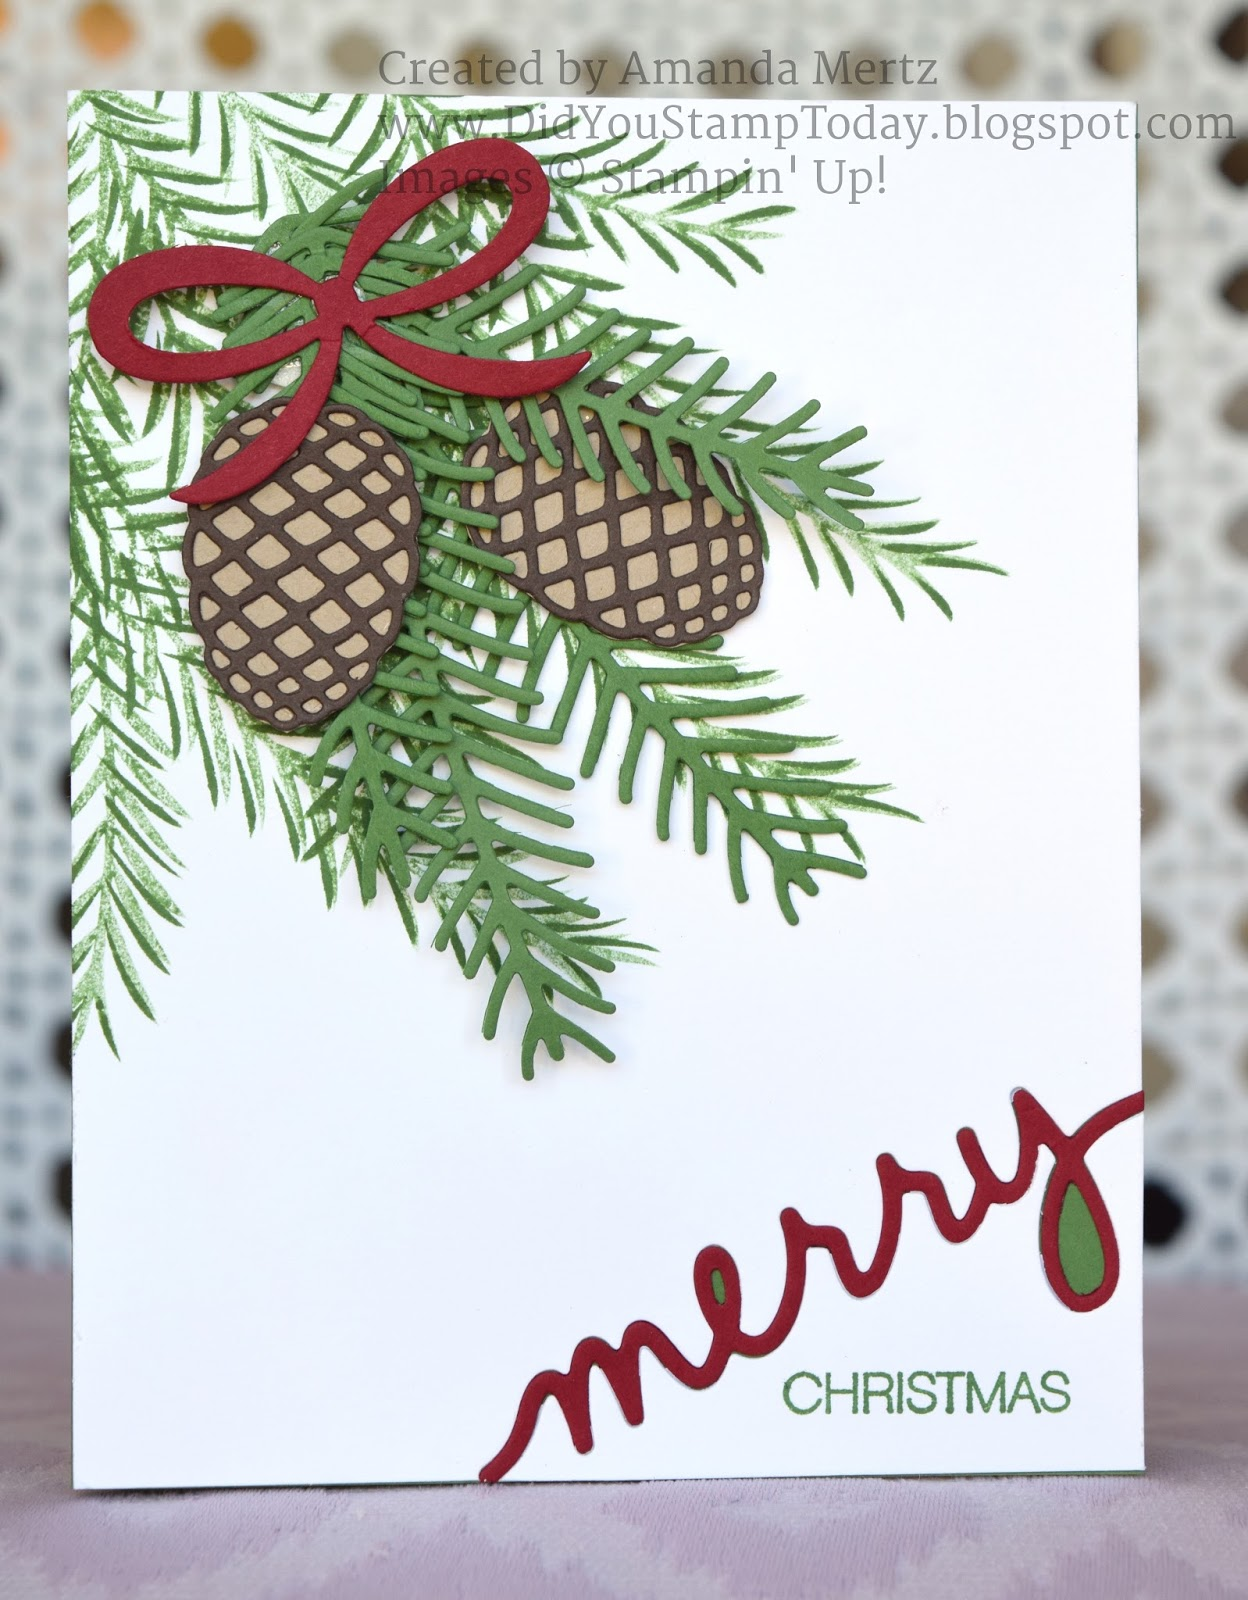 Christmas Greenery Images.Did You Stamp Today Christmas Greenery Stampin Up